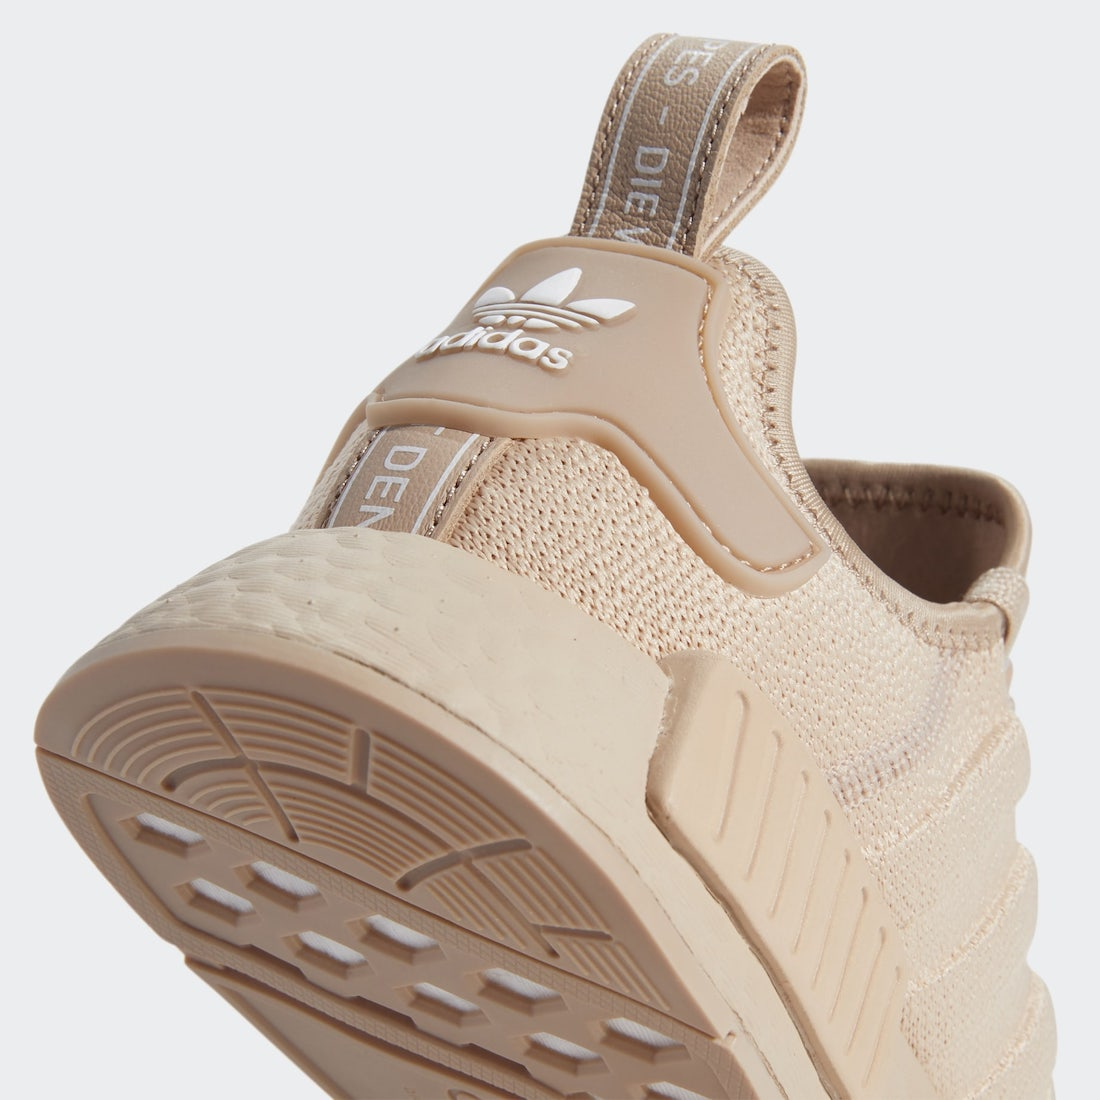 adidas NMD R1 Ash Pearl GX2593 Release Date